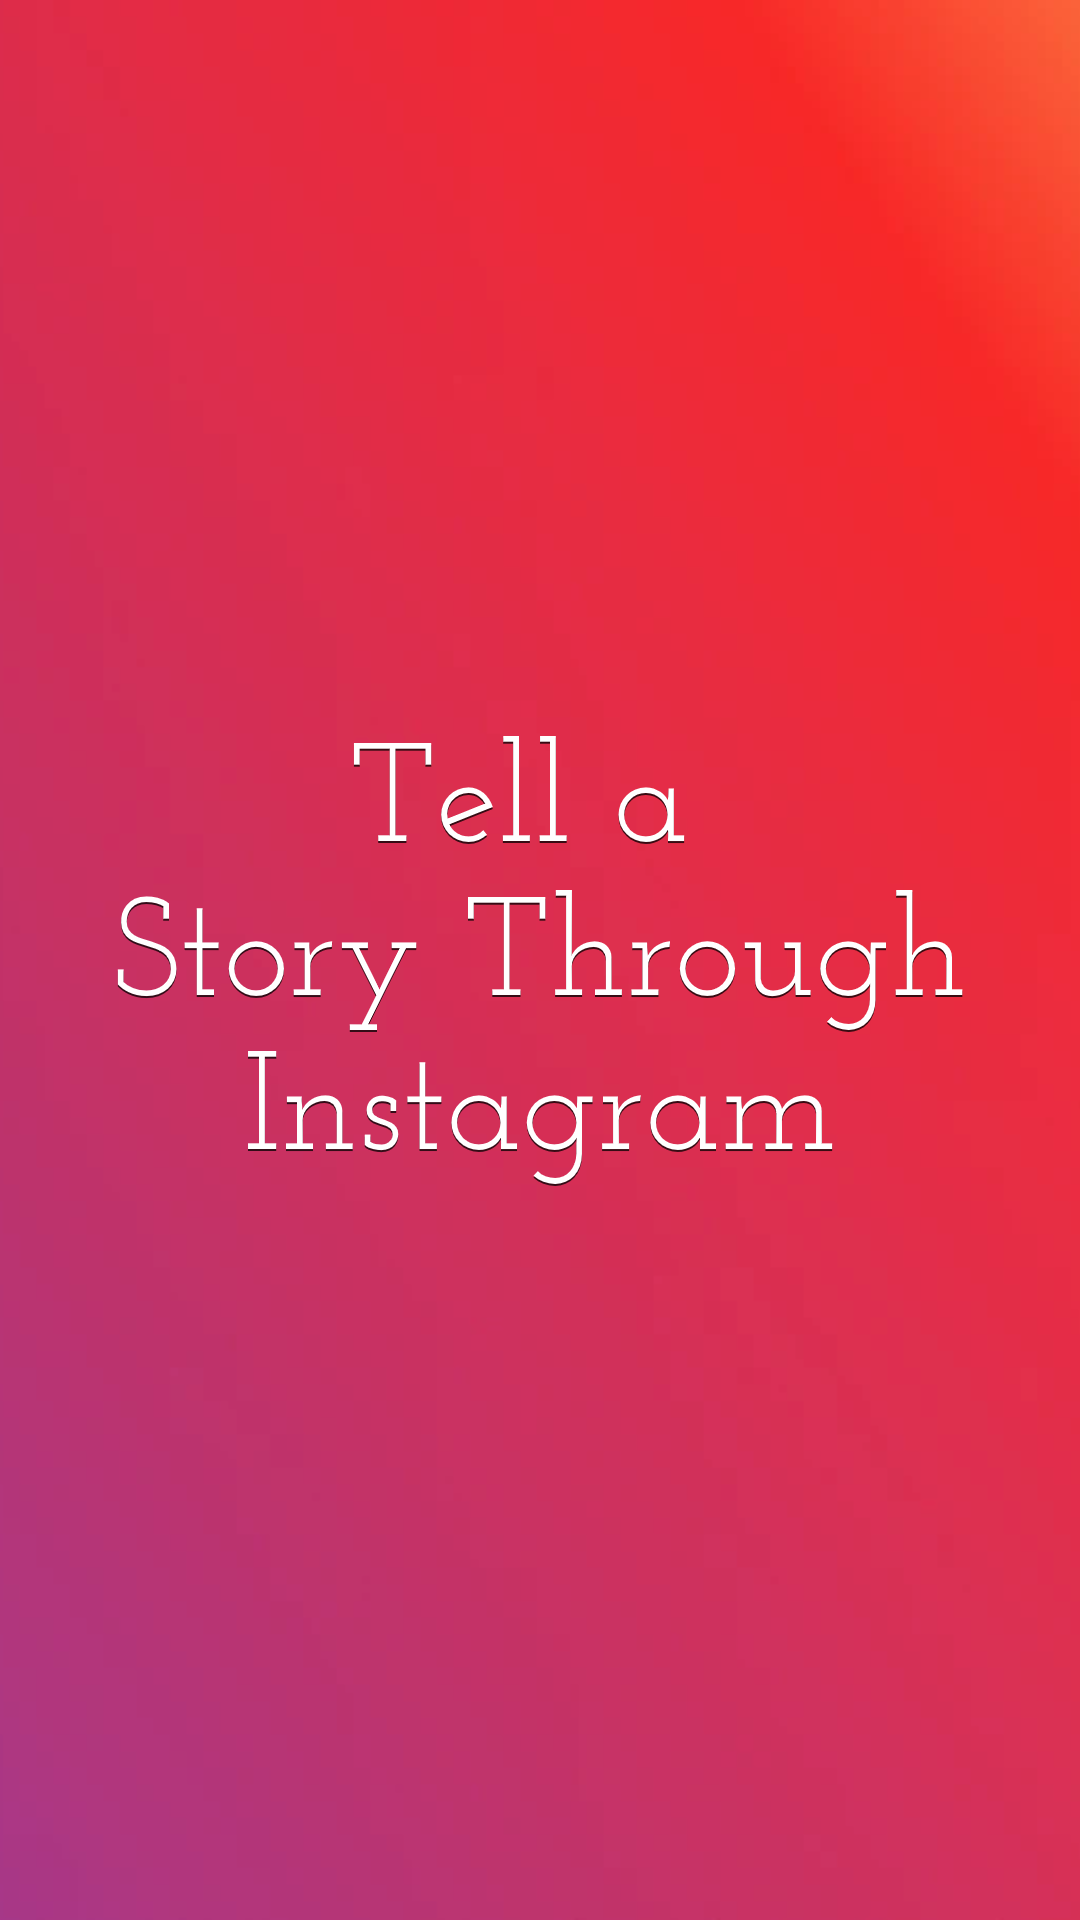 Tell a Story Through Instagram